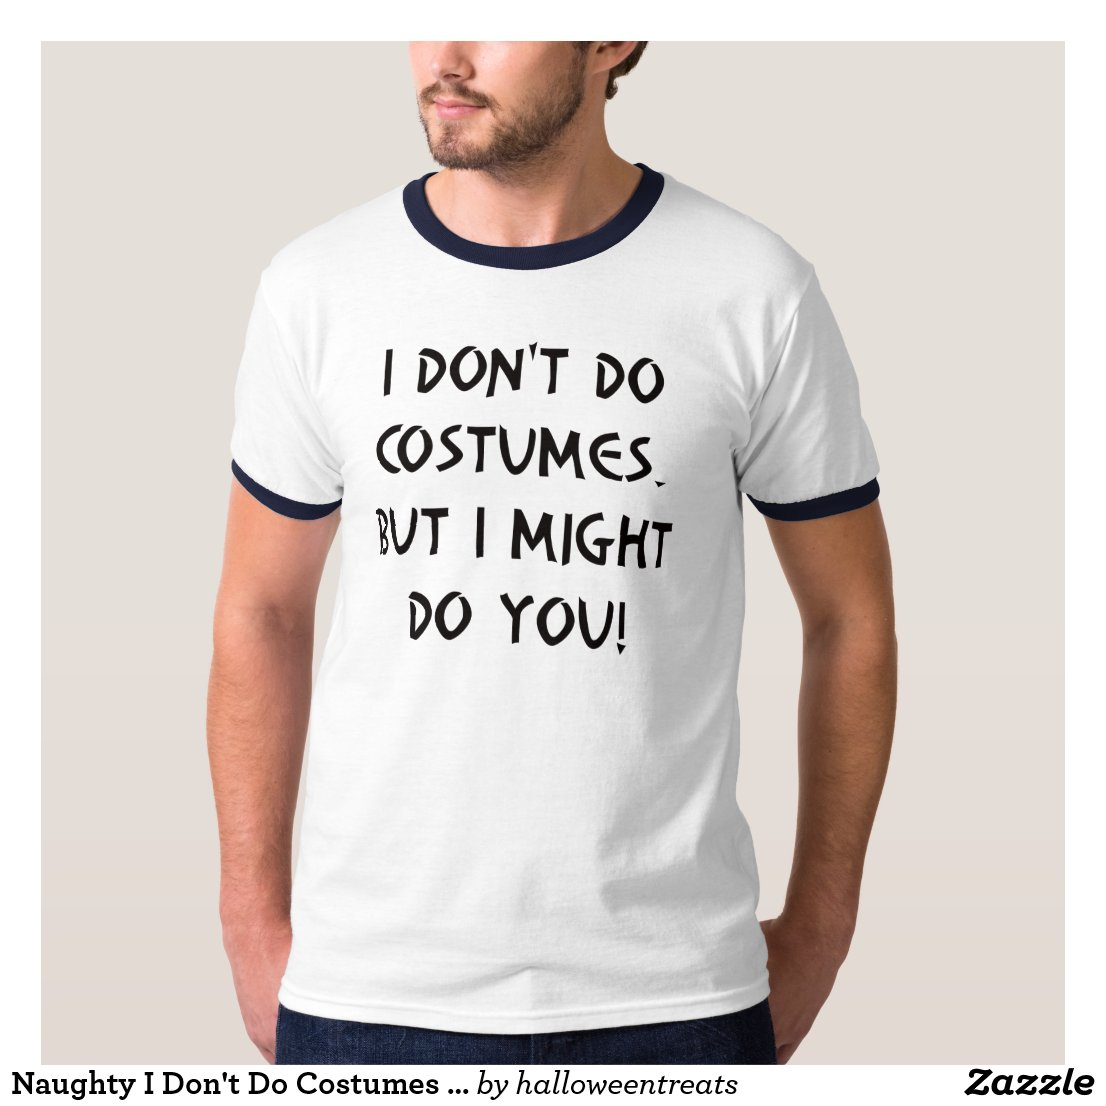 Naughty I Don't Do Costumes T-shirts